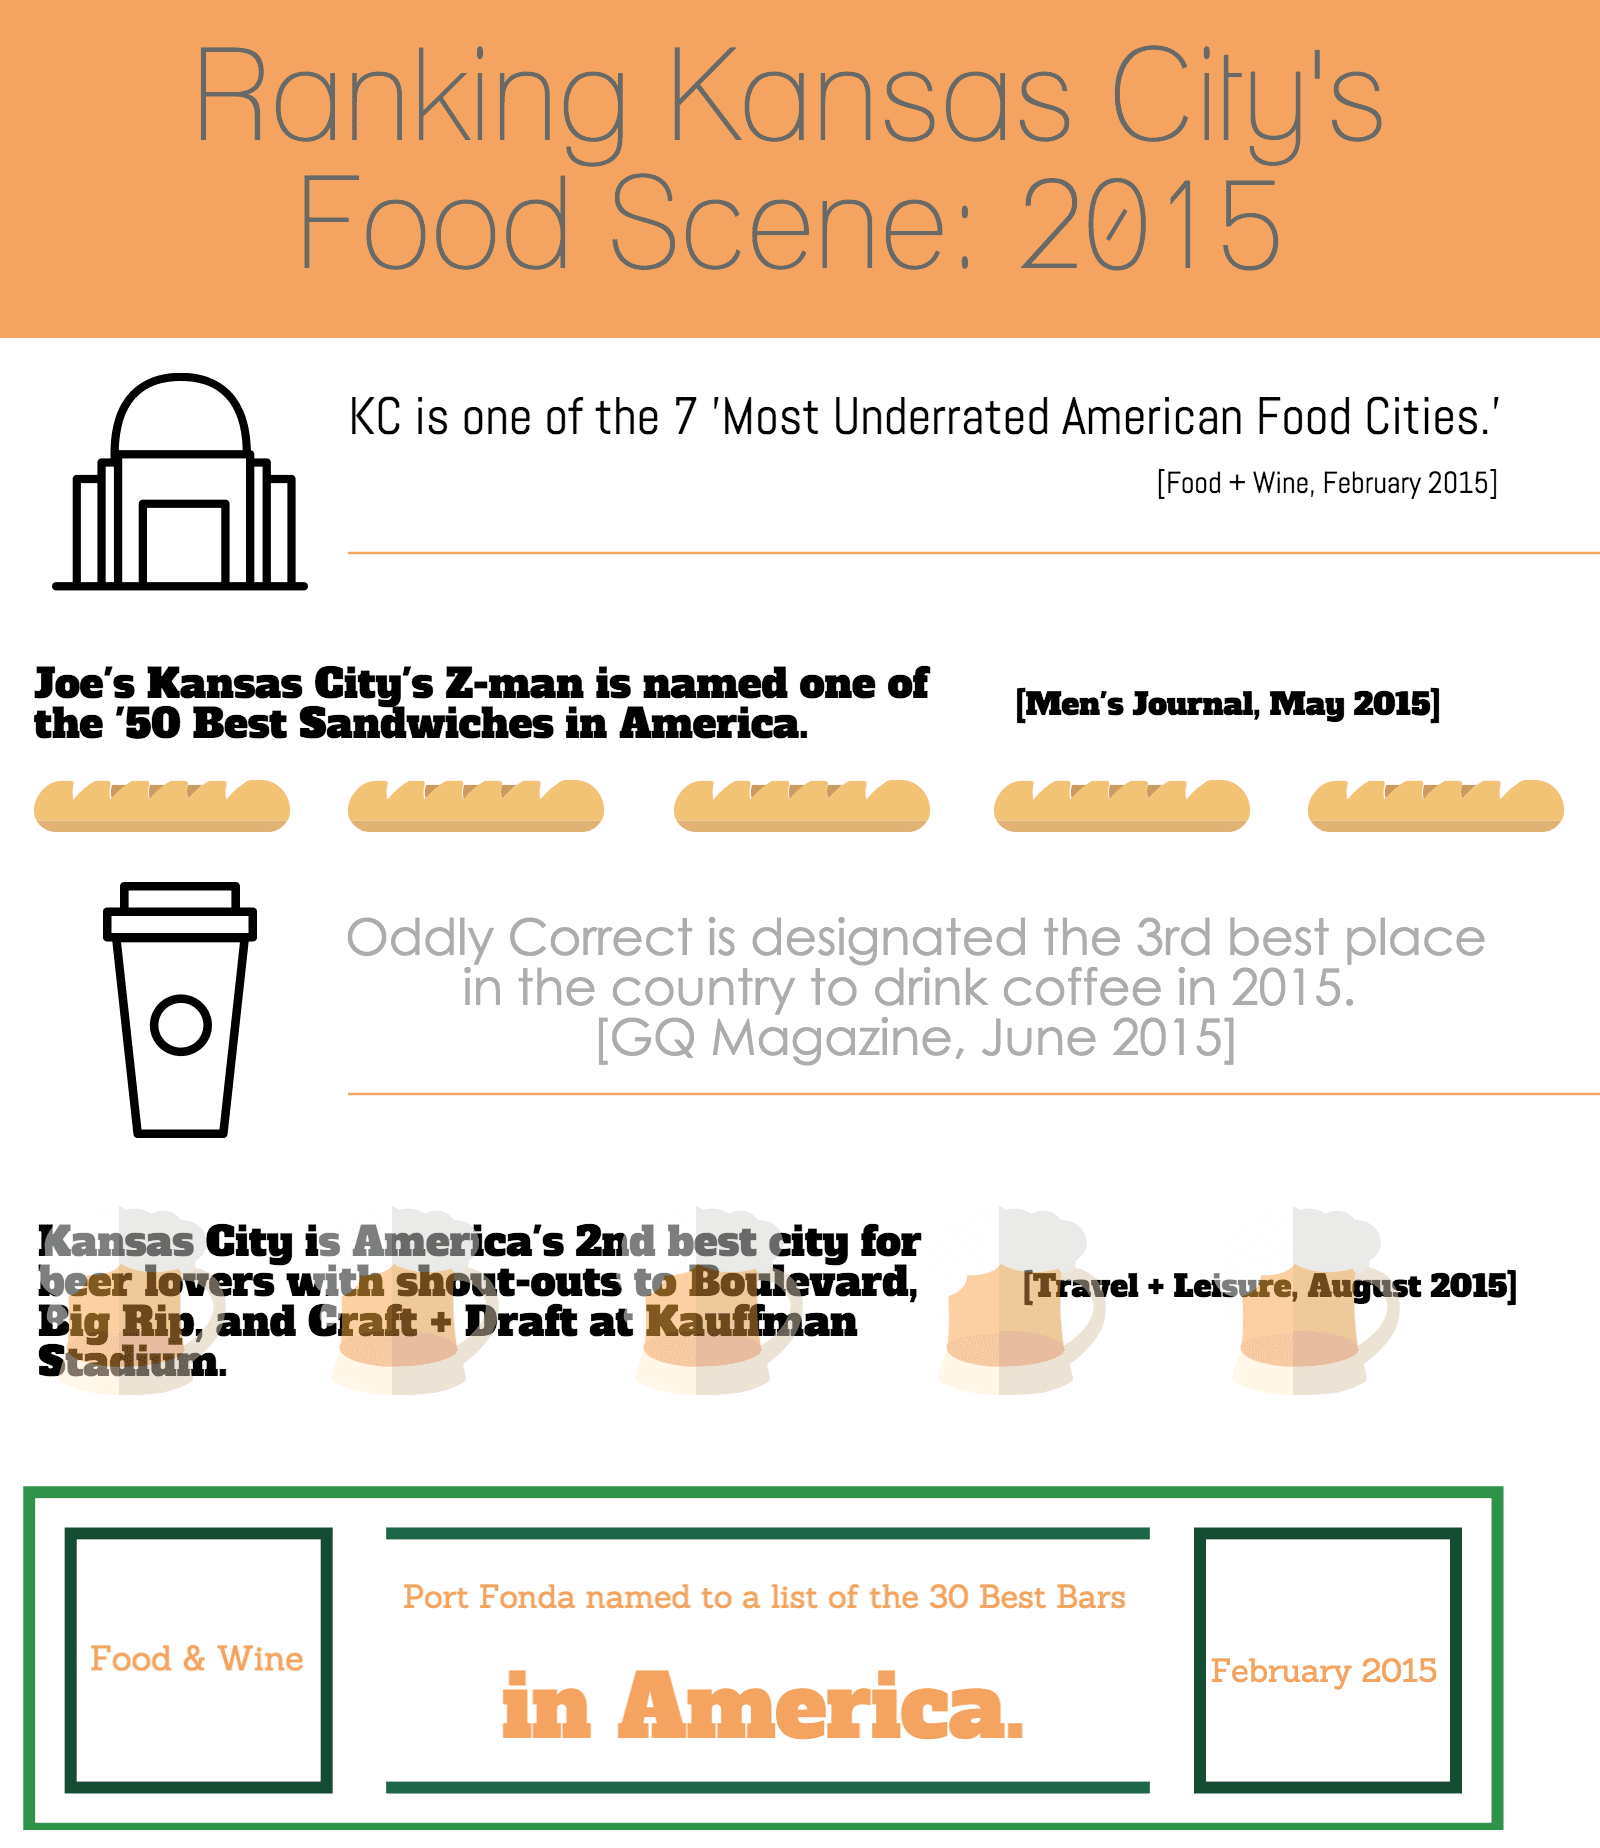 Ranking KC's Food Scene 2015 KC is one of the 7 Most Underrated American Food Cities (Food+Wine 2015) Joe's Kansas City's Z-Man is named one of the 50 Best Sandwiches in America (Men's Journal May 2015) Oddly Correct is designated the 3rd best place in the country to drink coffee in 2015 (GQ June 2015) Kansas City is America's 2nd best city for beer lovers with shout-outs to Boulevard, Big Rip and Craft+Draft at Kauffman Stadium (Travel+Leisure Aug 2015) Port Fond named to a list of the 30 Best Bars in America (Food & Wine Feb 2015)